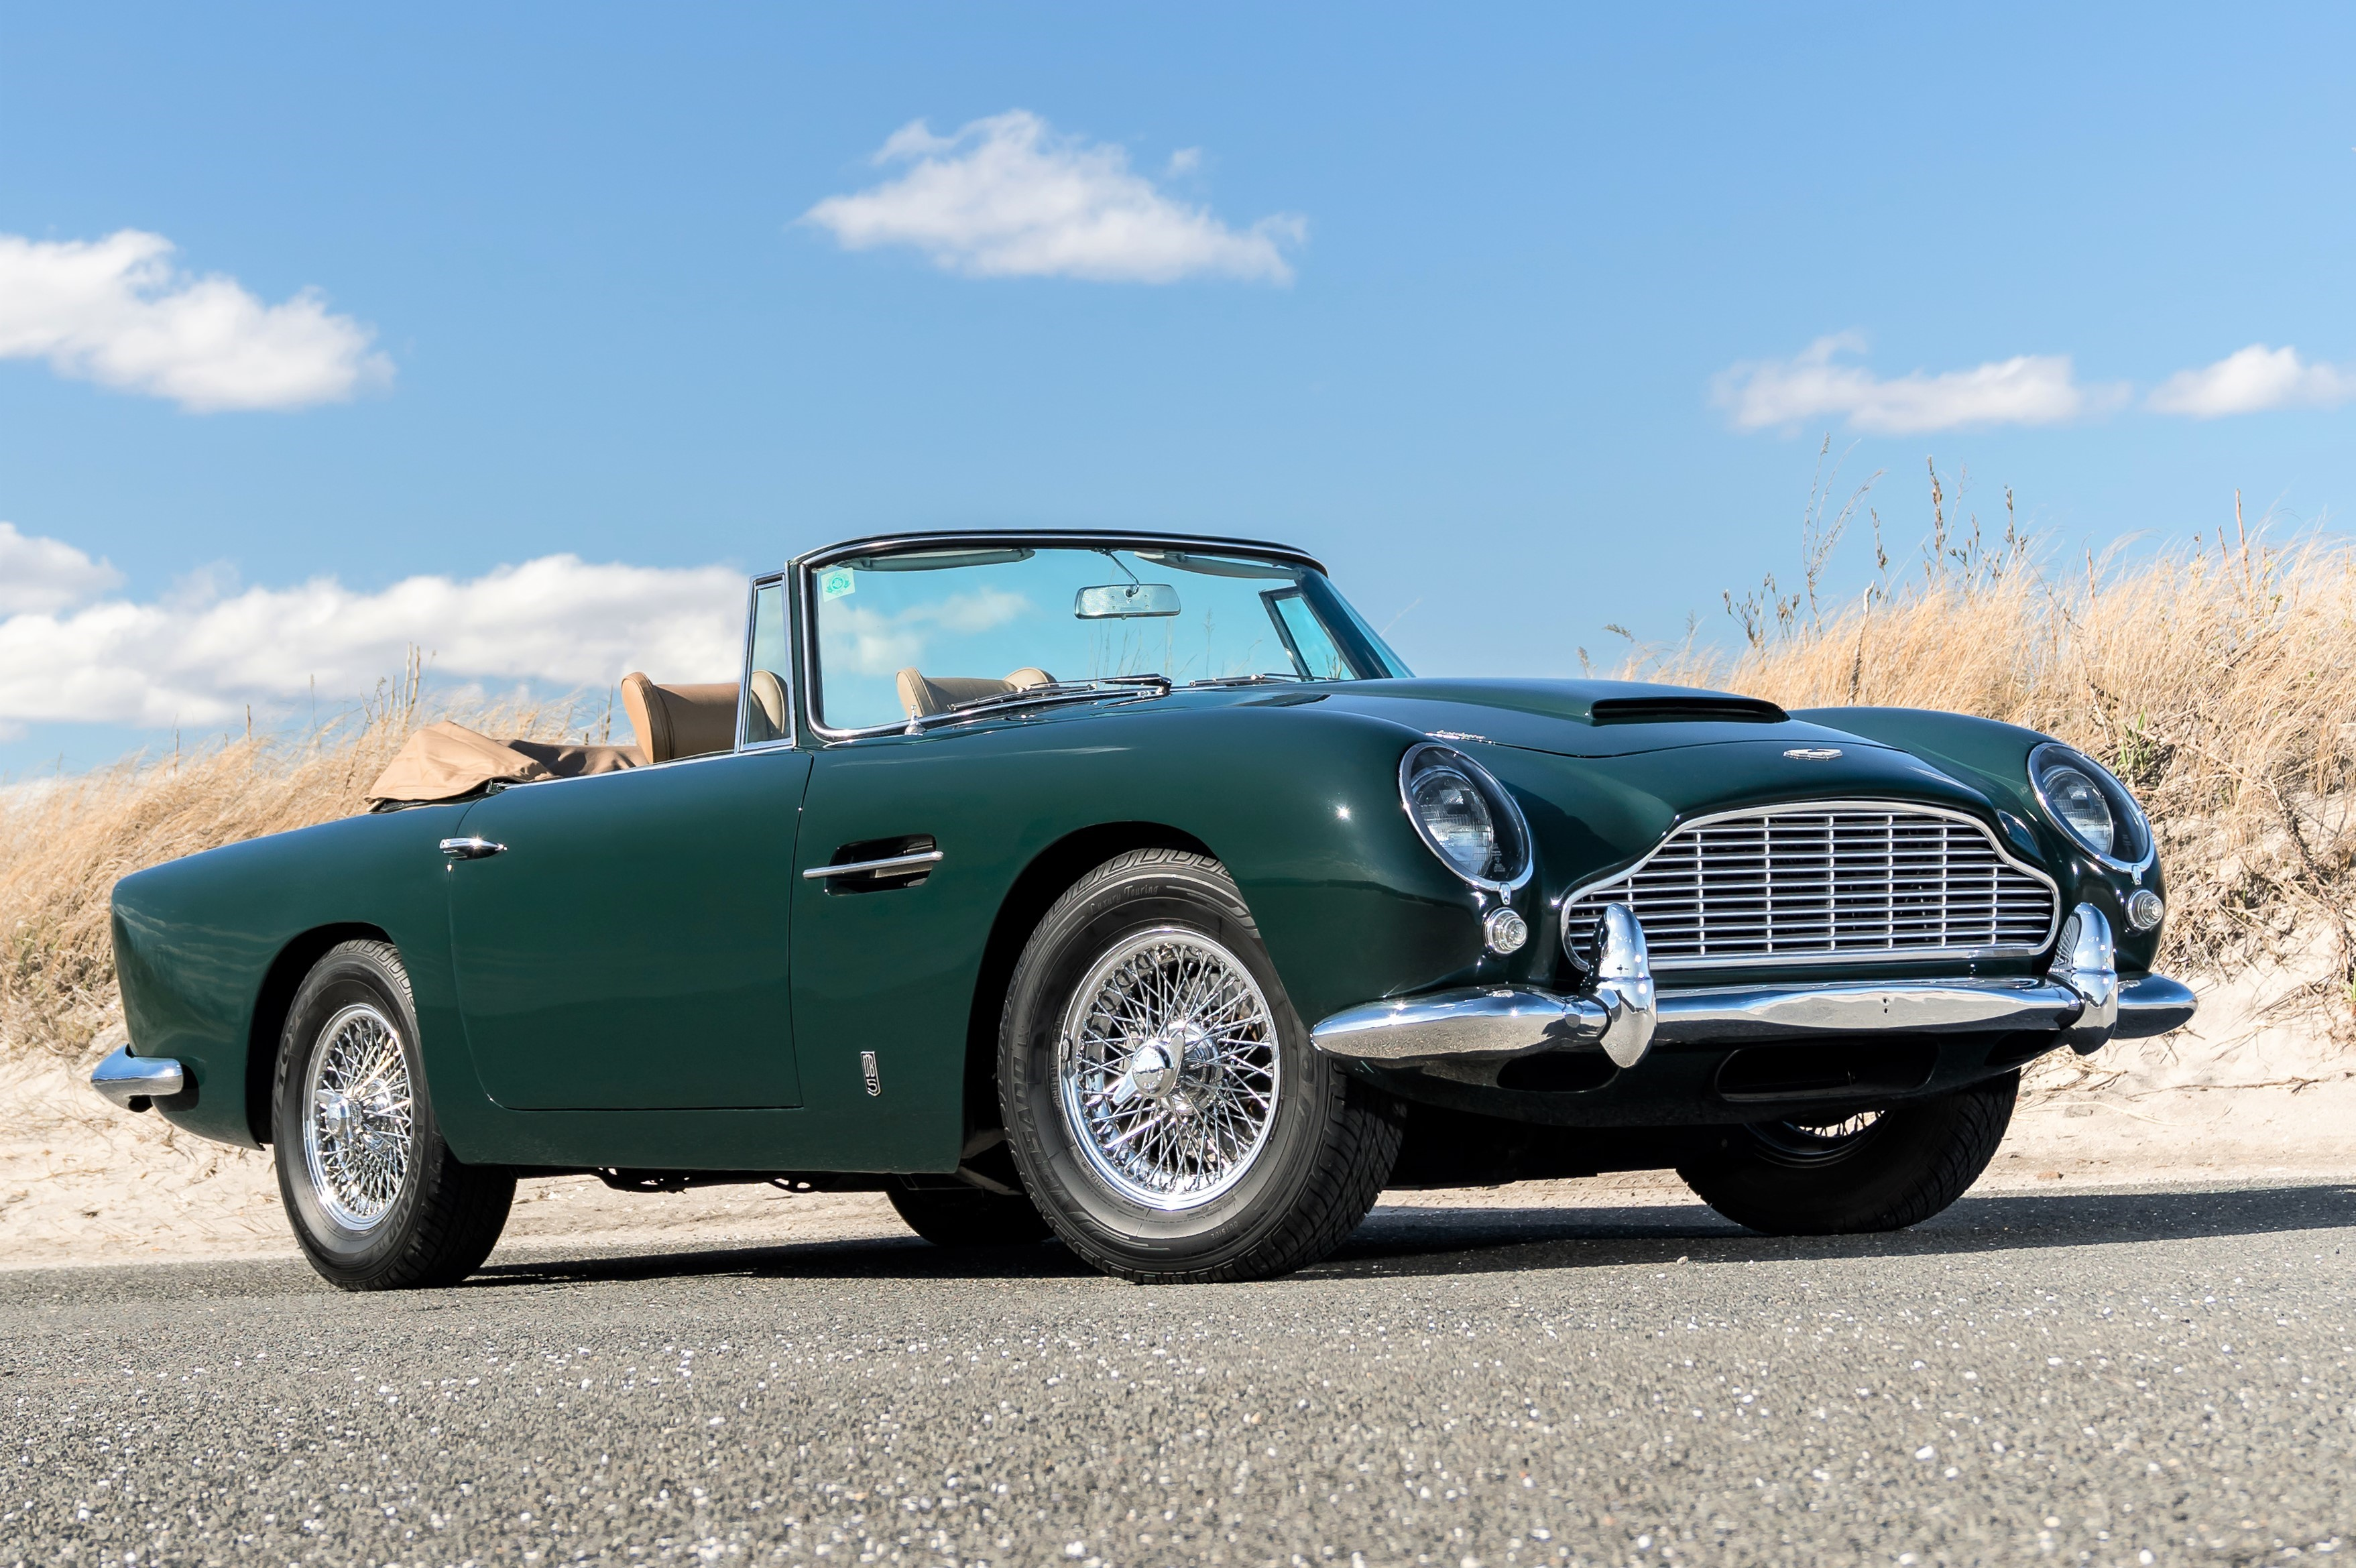 An Aston Martin DB5 convertible was the high seller of the auction | Bonhams